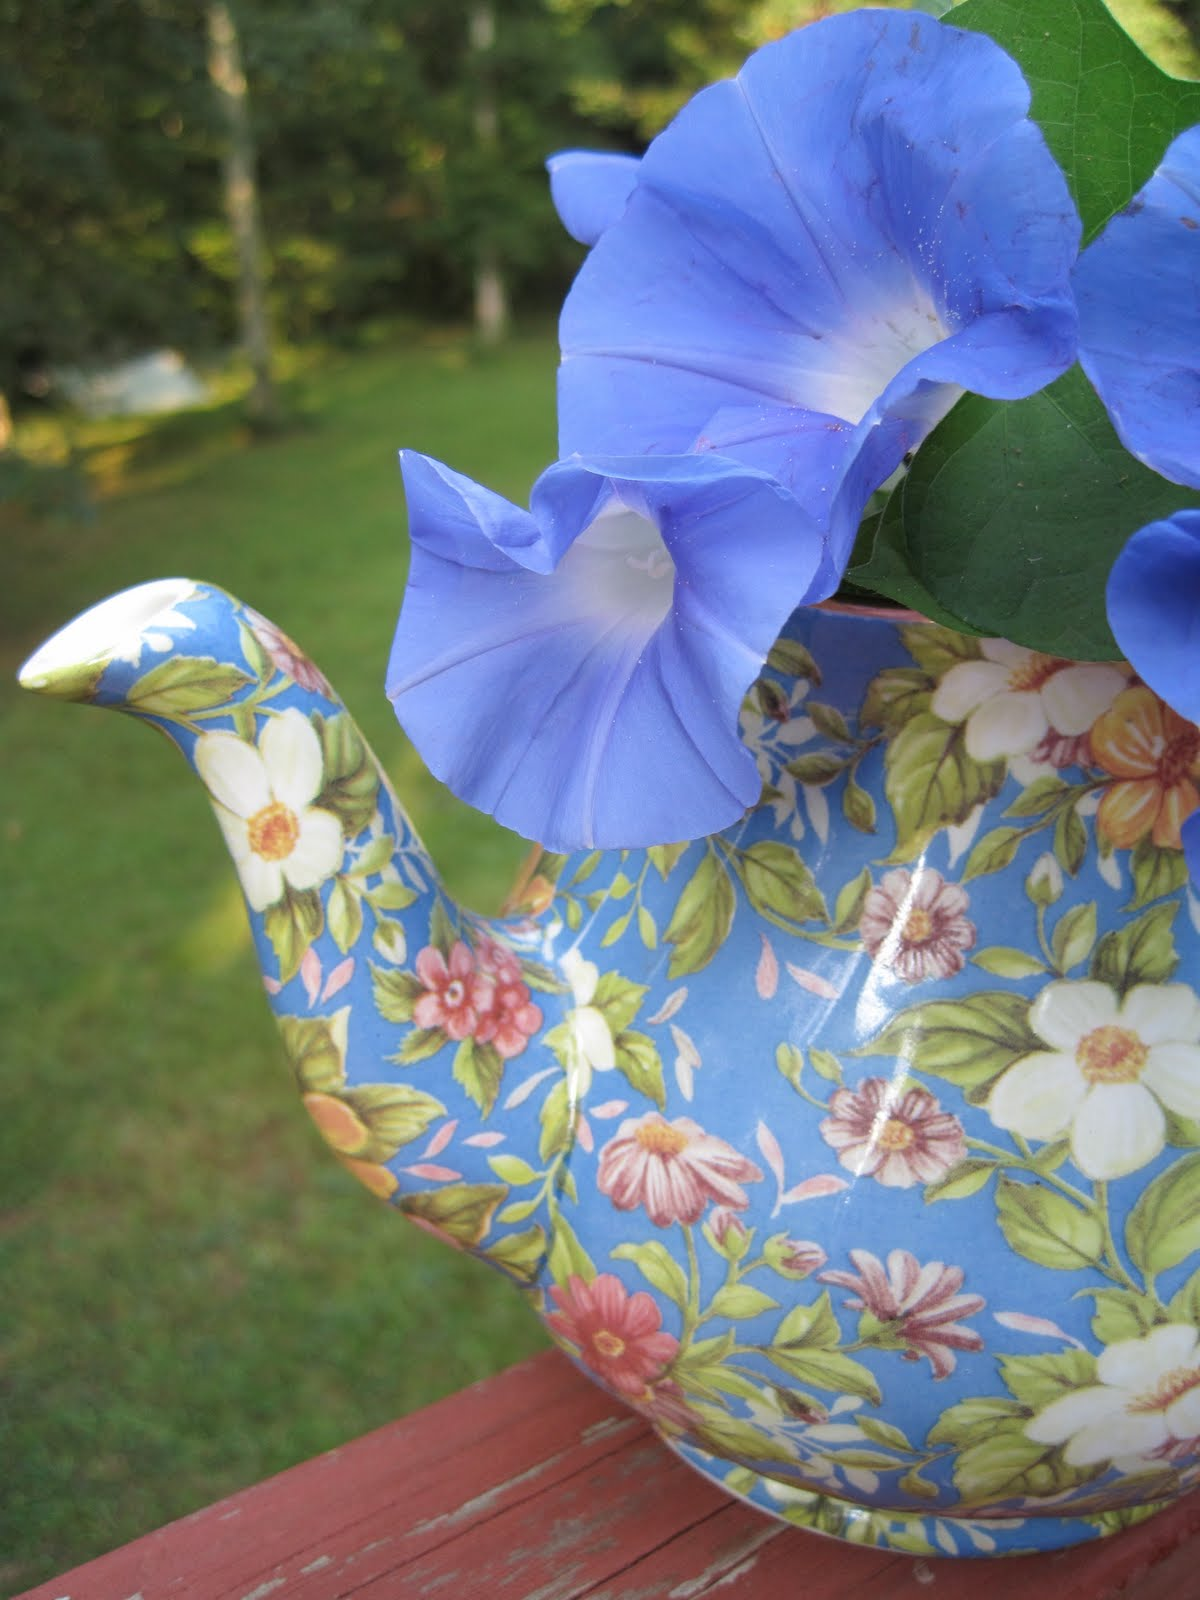 Tea With Friends: End-of-summer morning glories